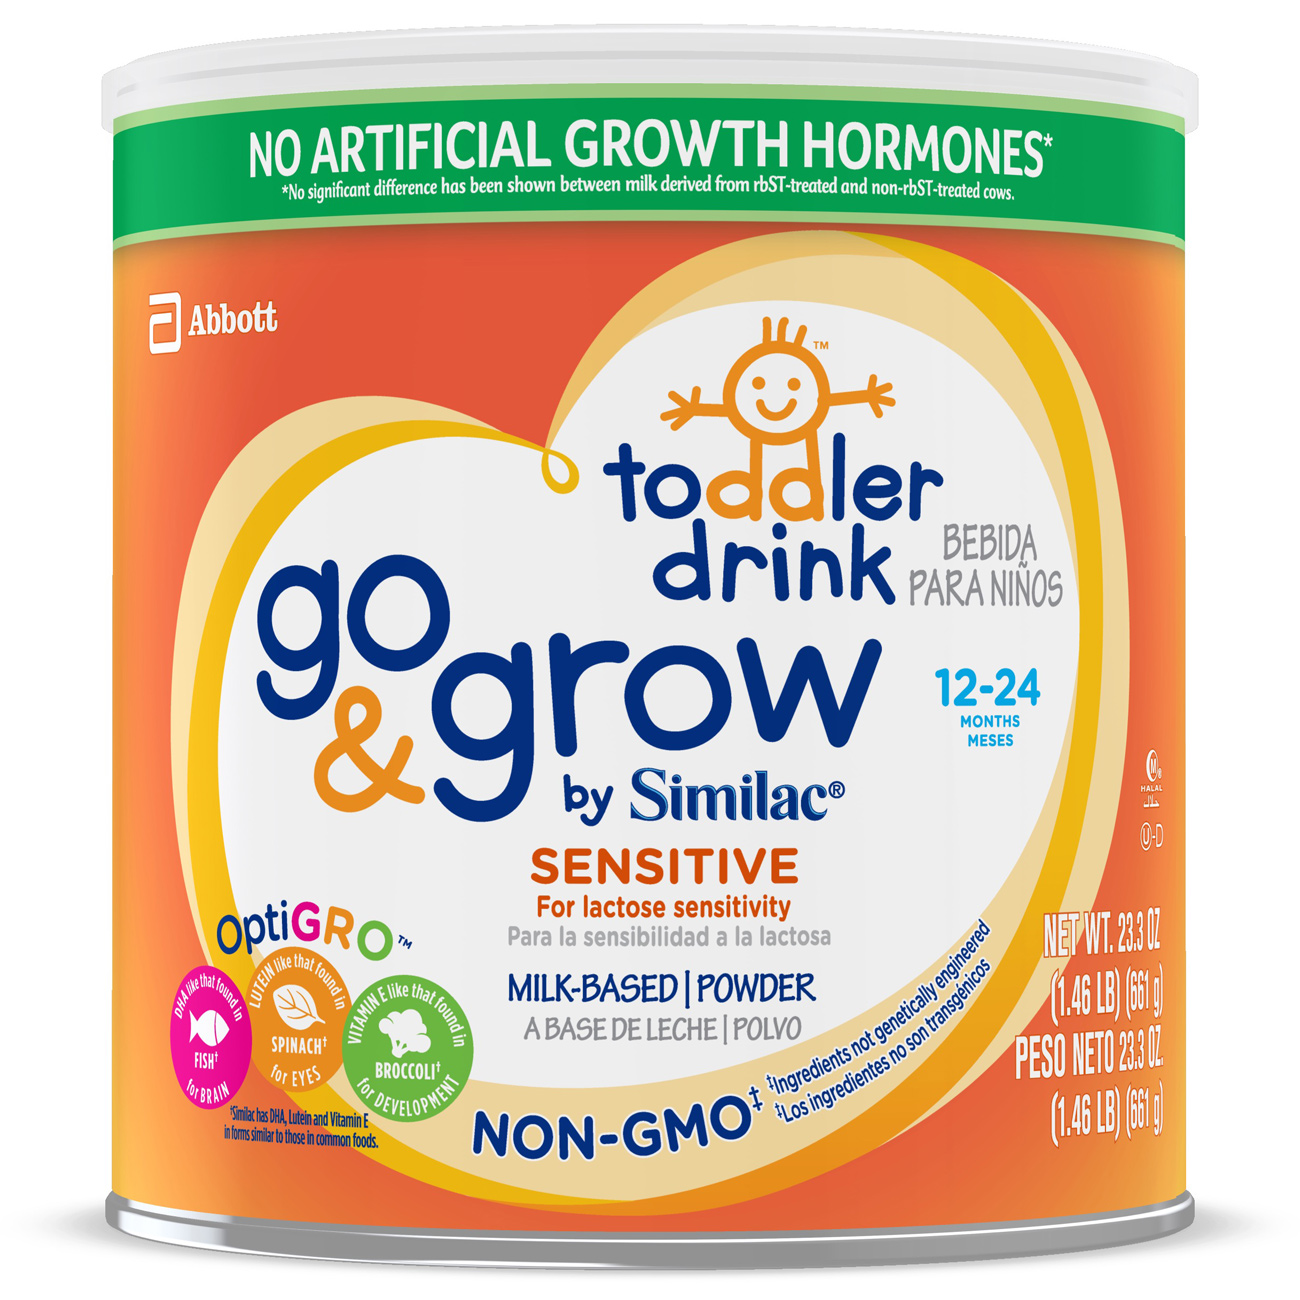 Go & Grow by Similac Sensitive Non-GMO Milk Based Toddler Drink, For Lactose Sensitivity, 24oz (Pack of 4)